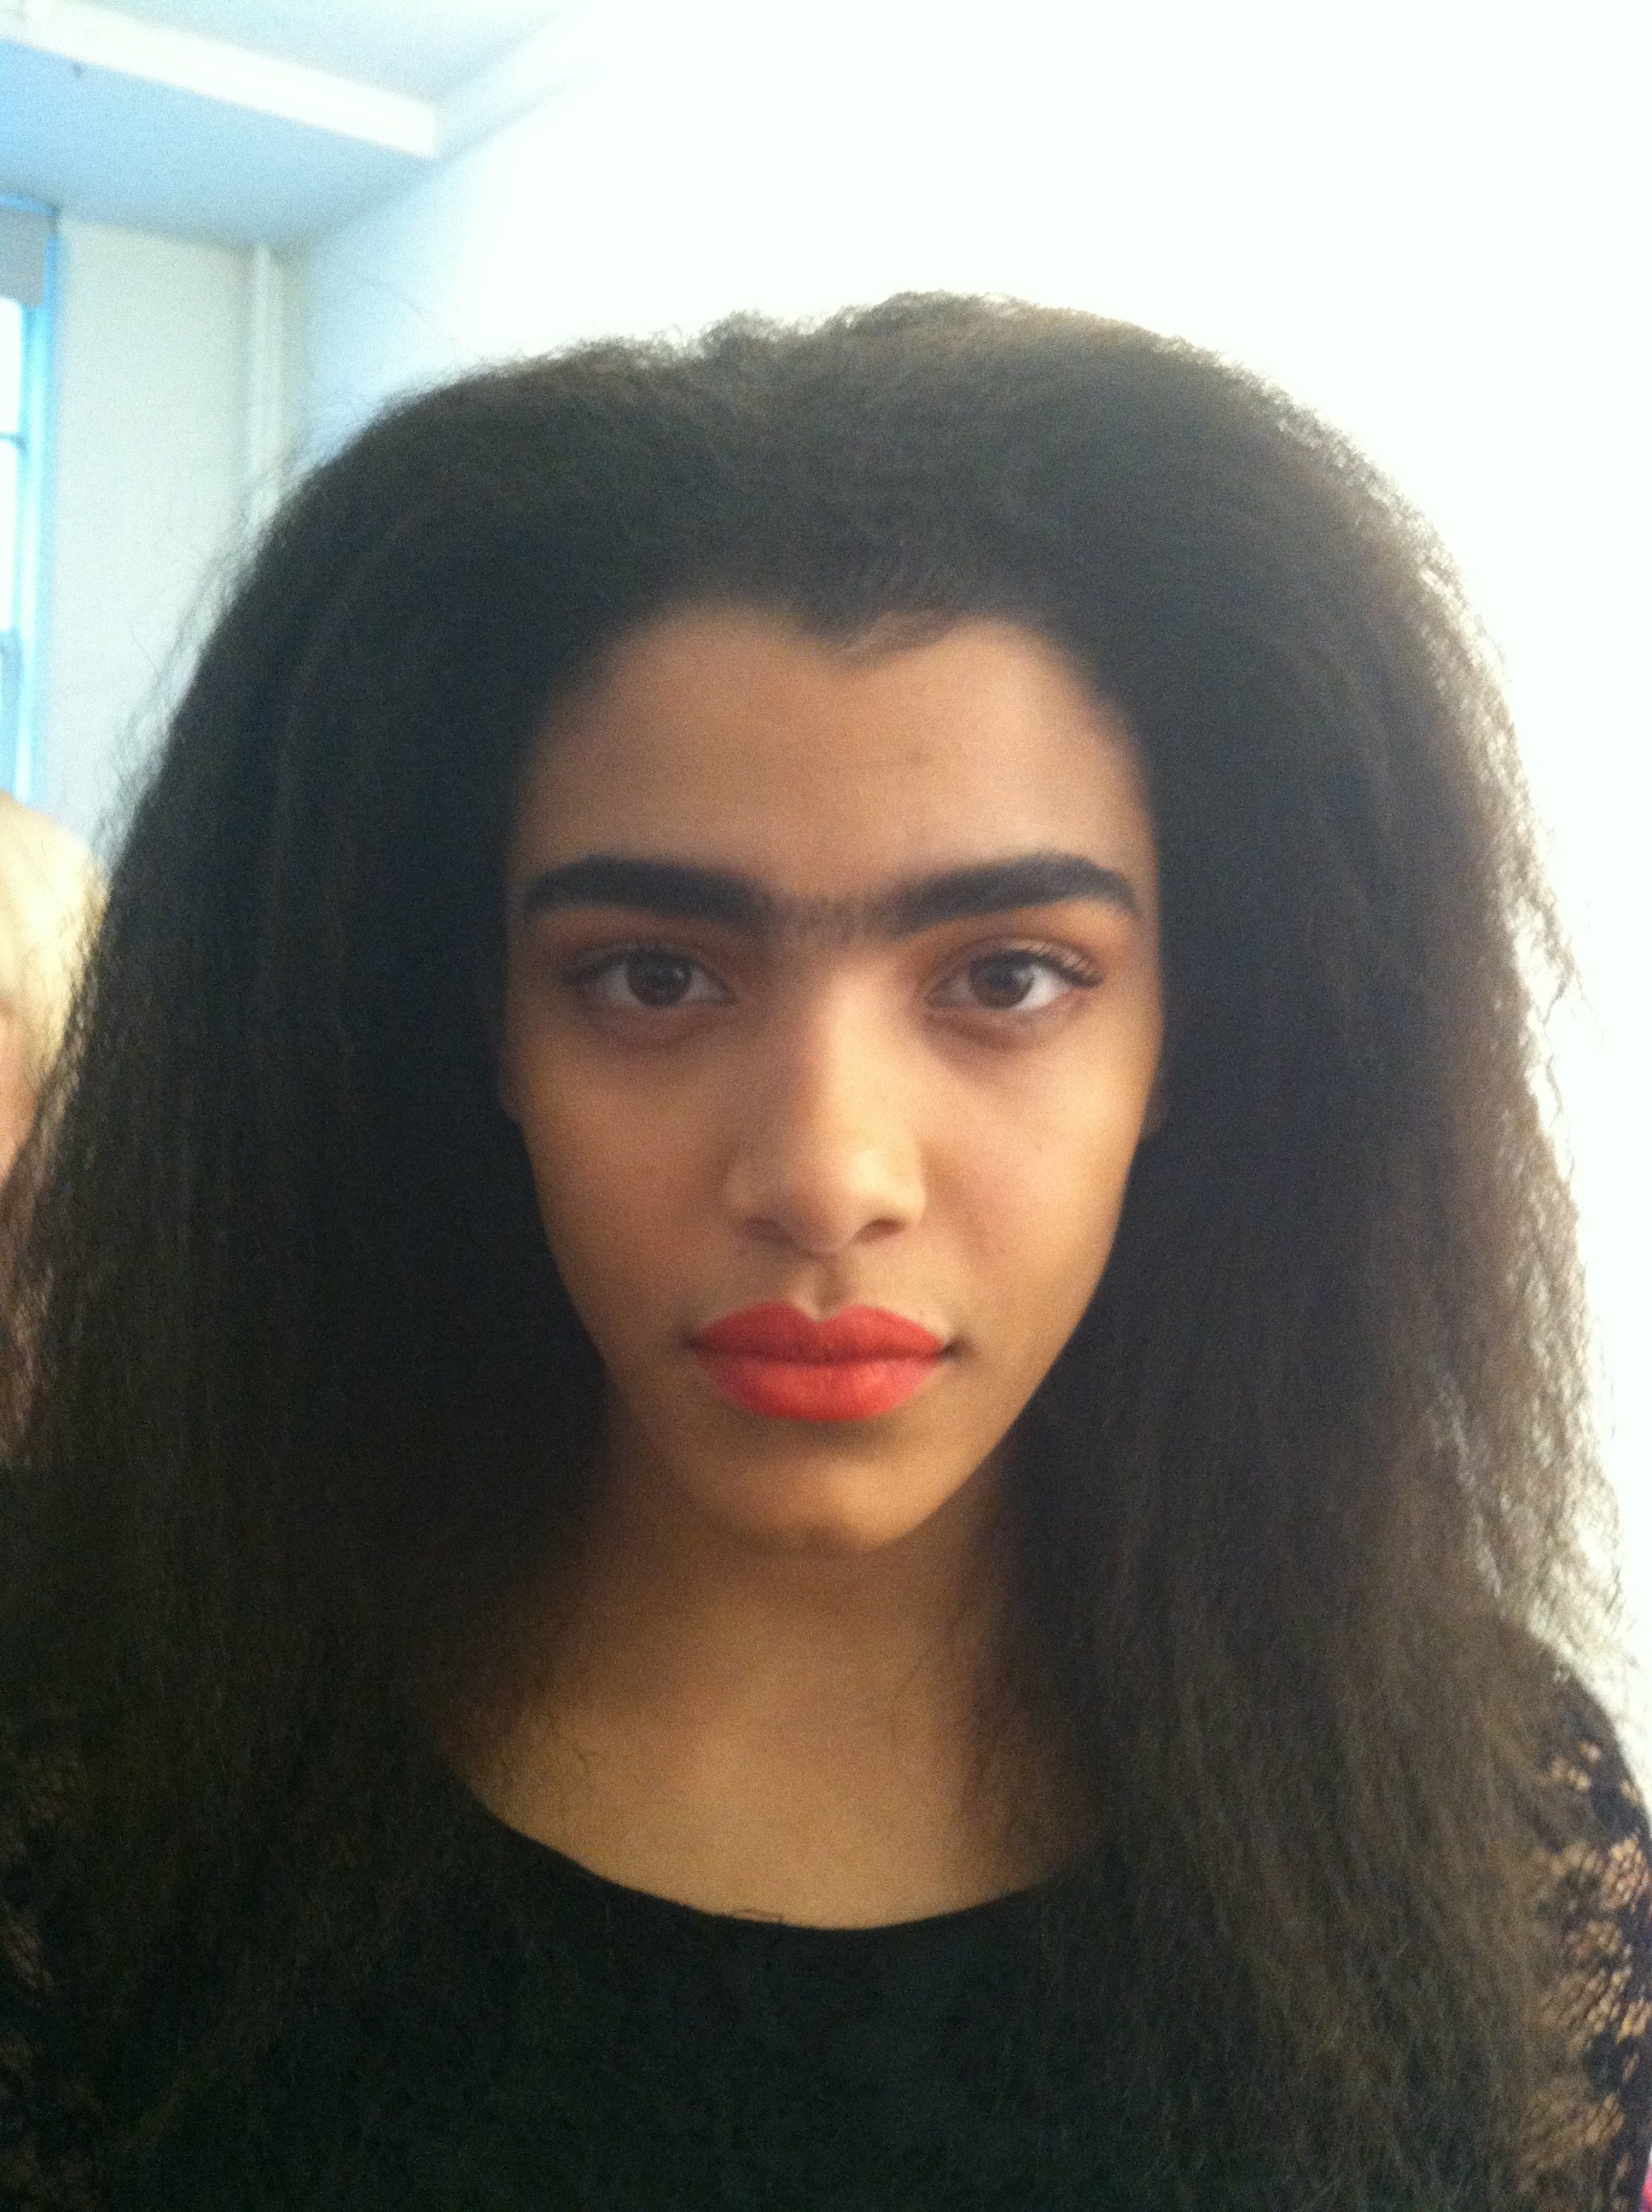 Finished makeup with Frida-meets-Brook Shields-brow